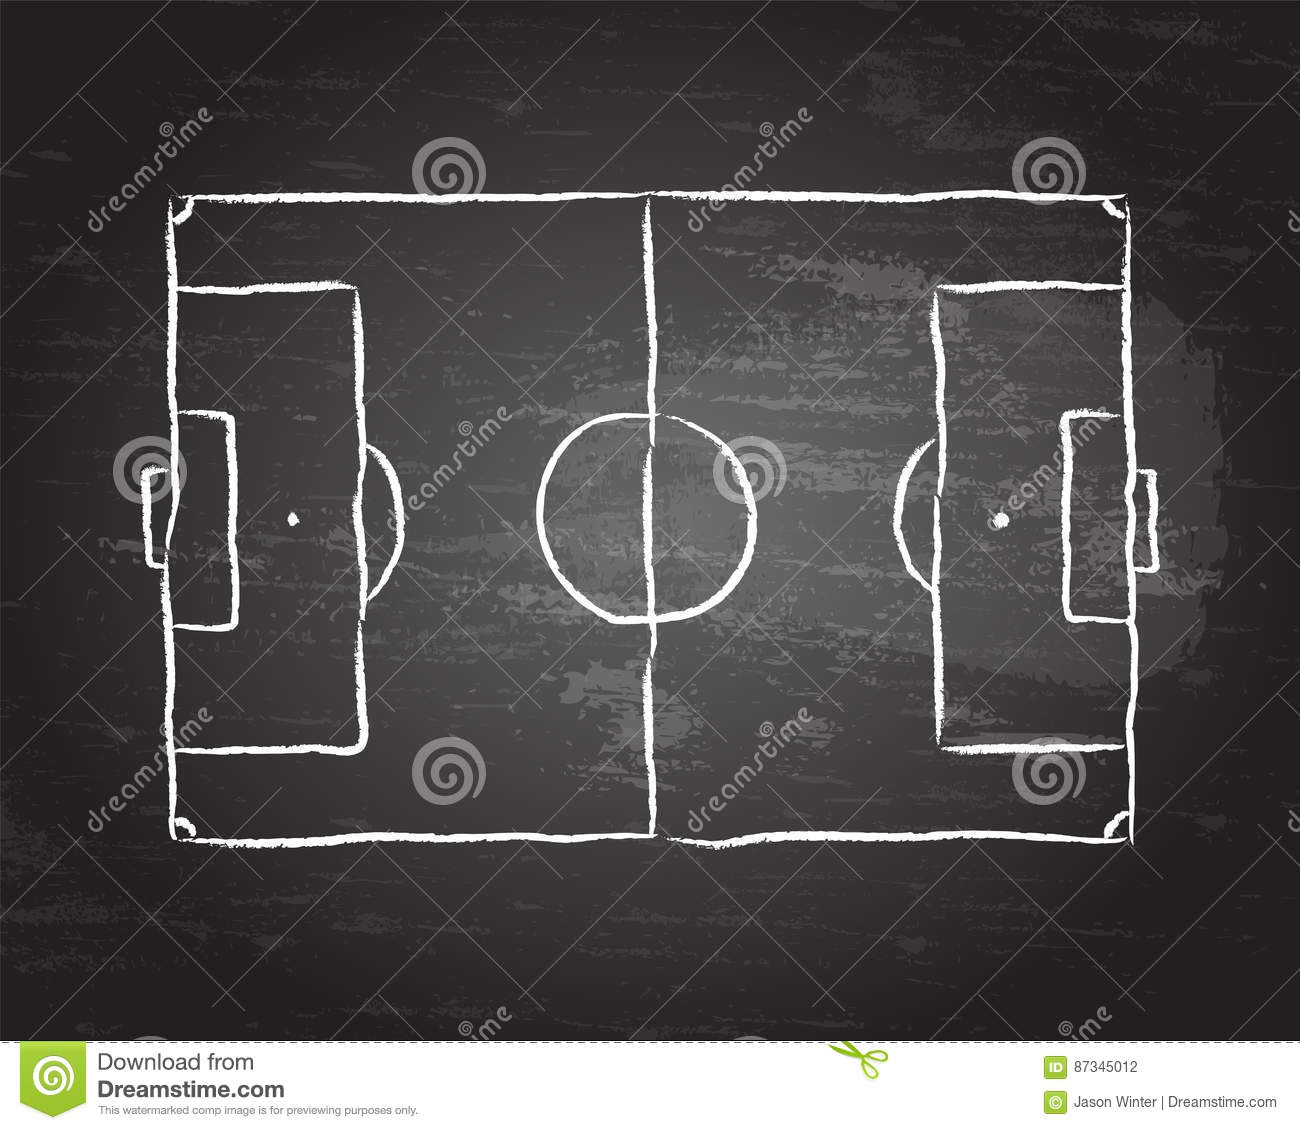 soccer pitch blackboard football diagram 87345012 soccer pitch blackboard stock vector illustration of sketch 87345012